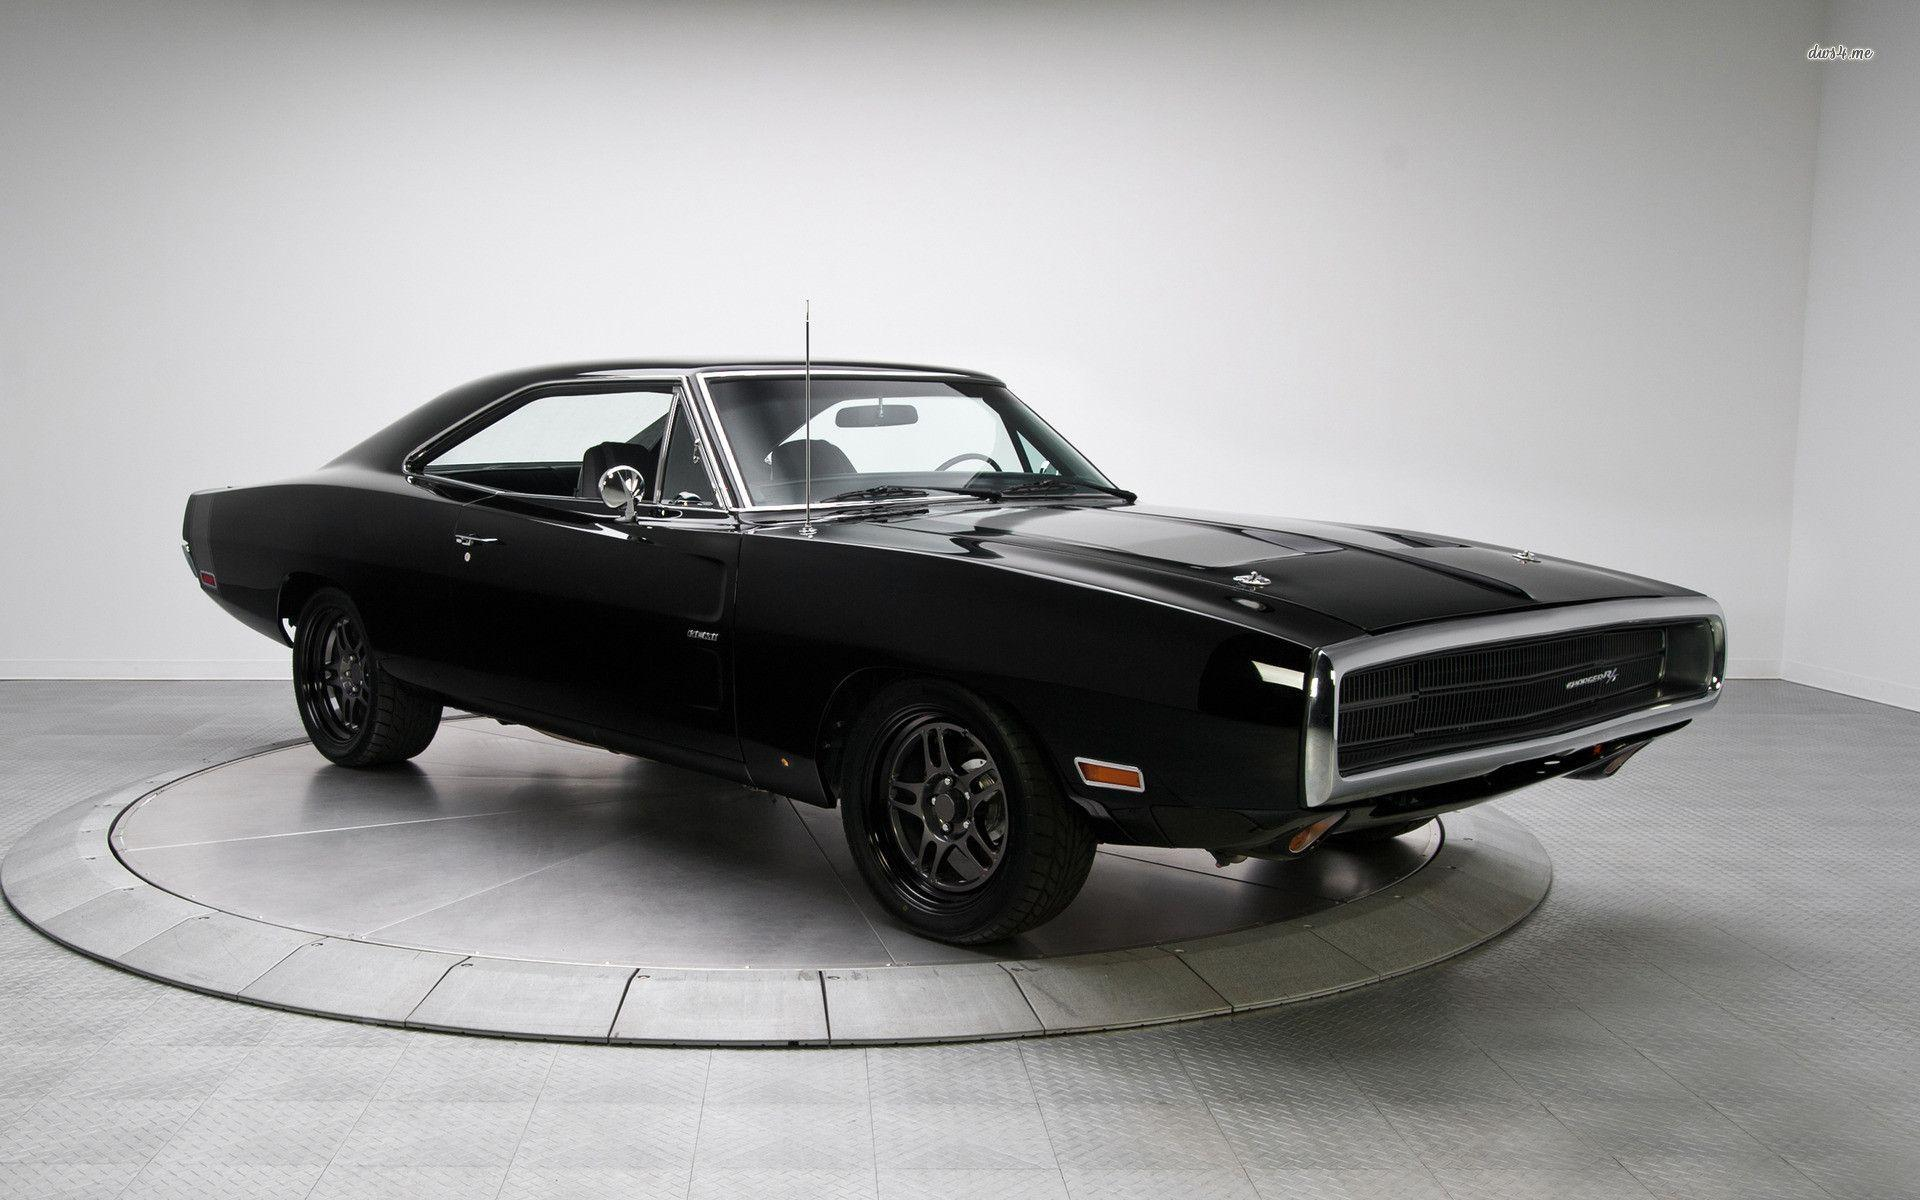 Dodge Challenger Blacked Out >> 1970 Dodge Charger Wallpapers - Wallpaper Cave